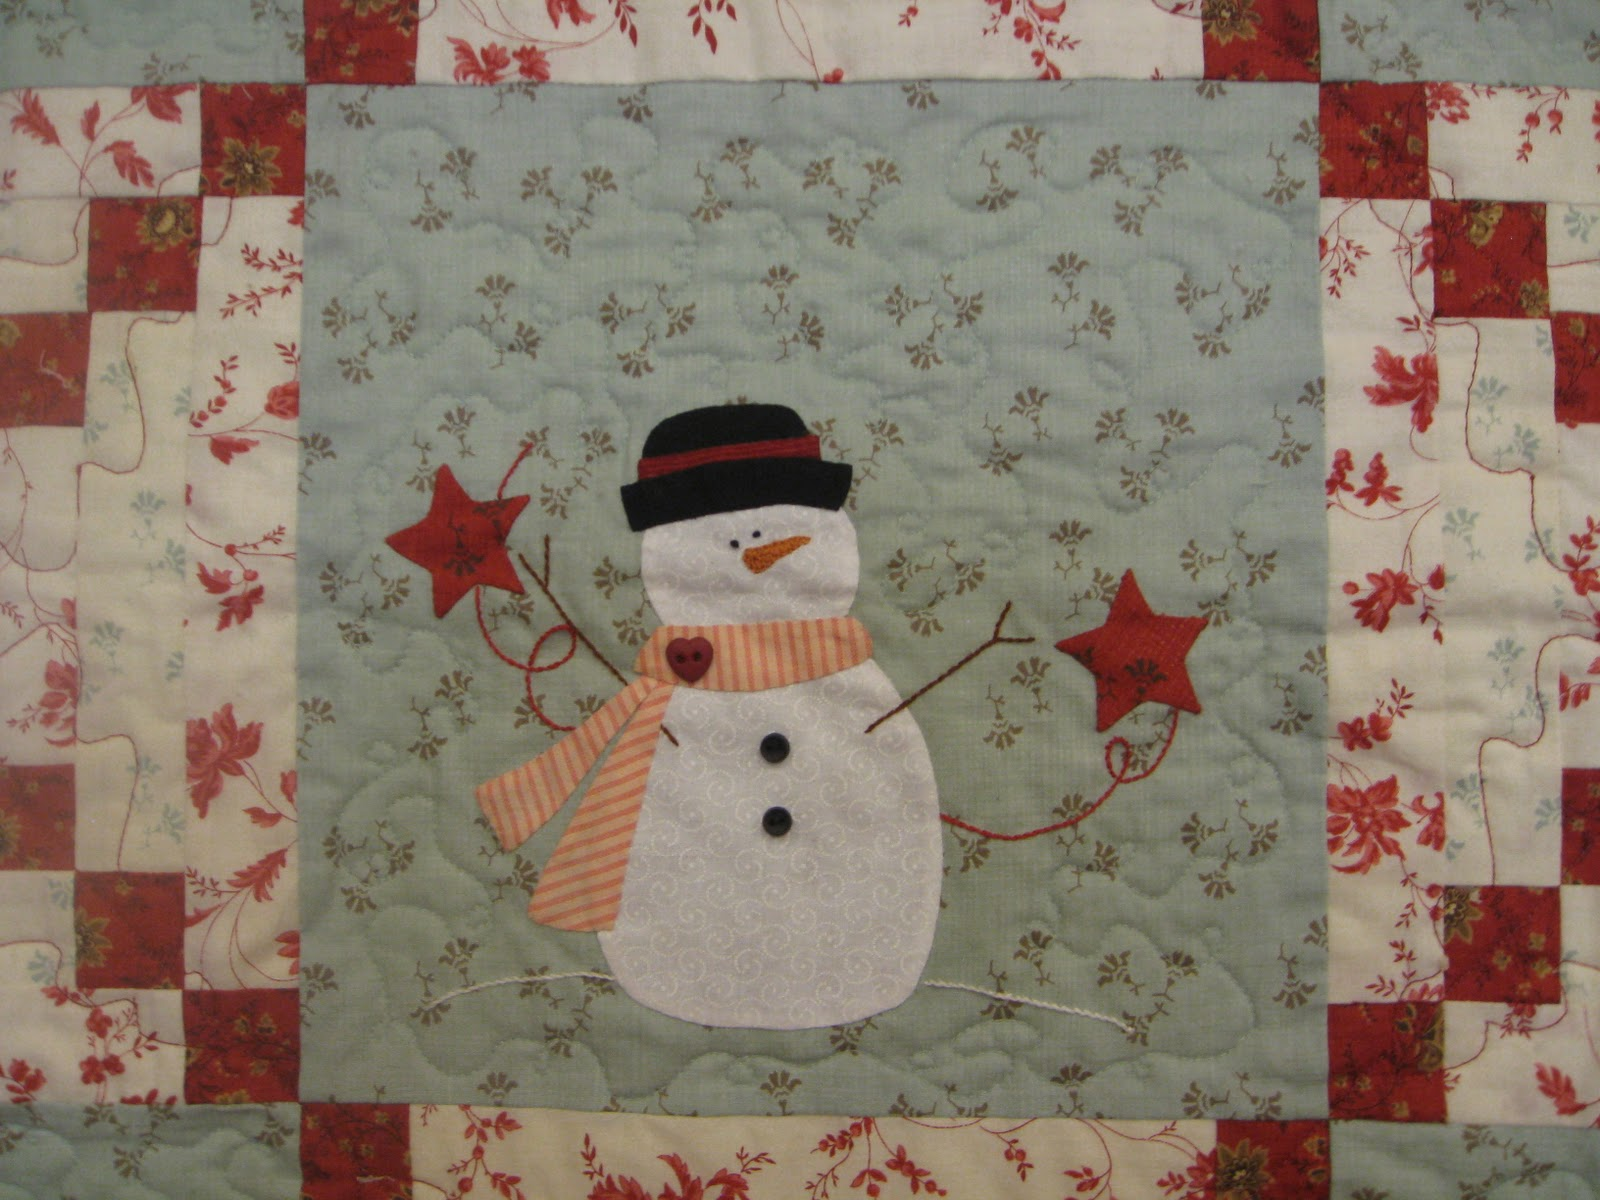 Gingerbread Girl's Quilting Adventures: Decorating for Christmas ... : bunny hill quilt patterns - Adamdwight.com